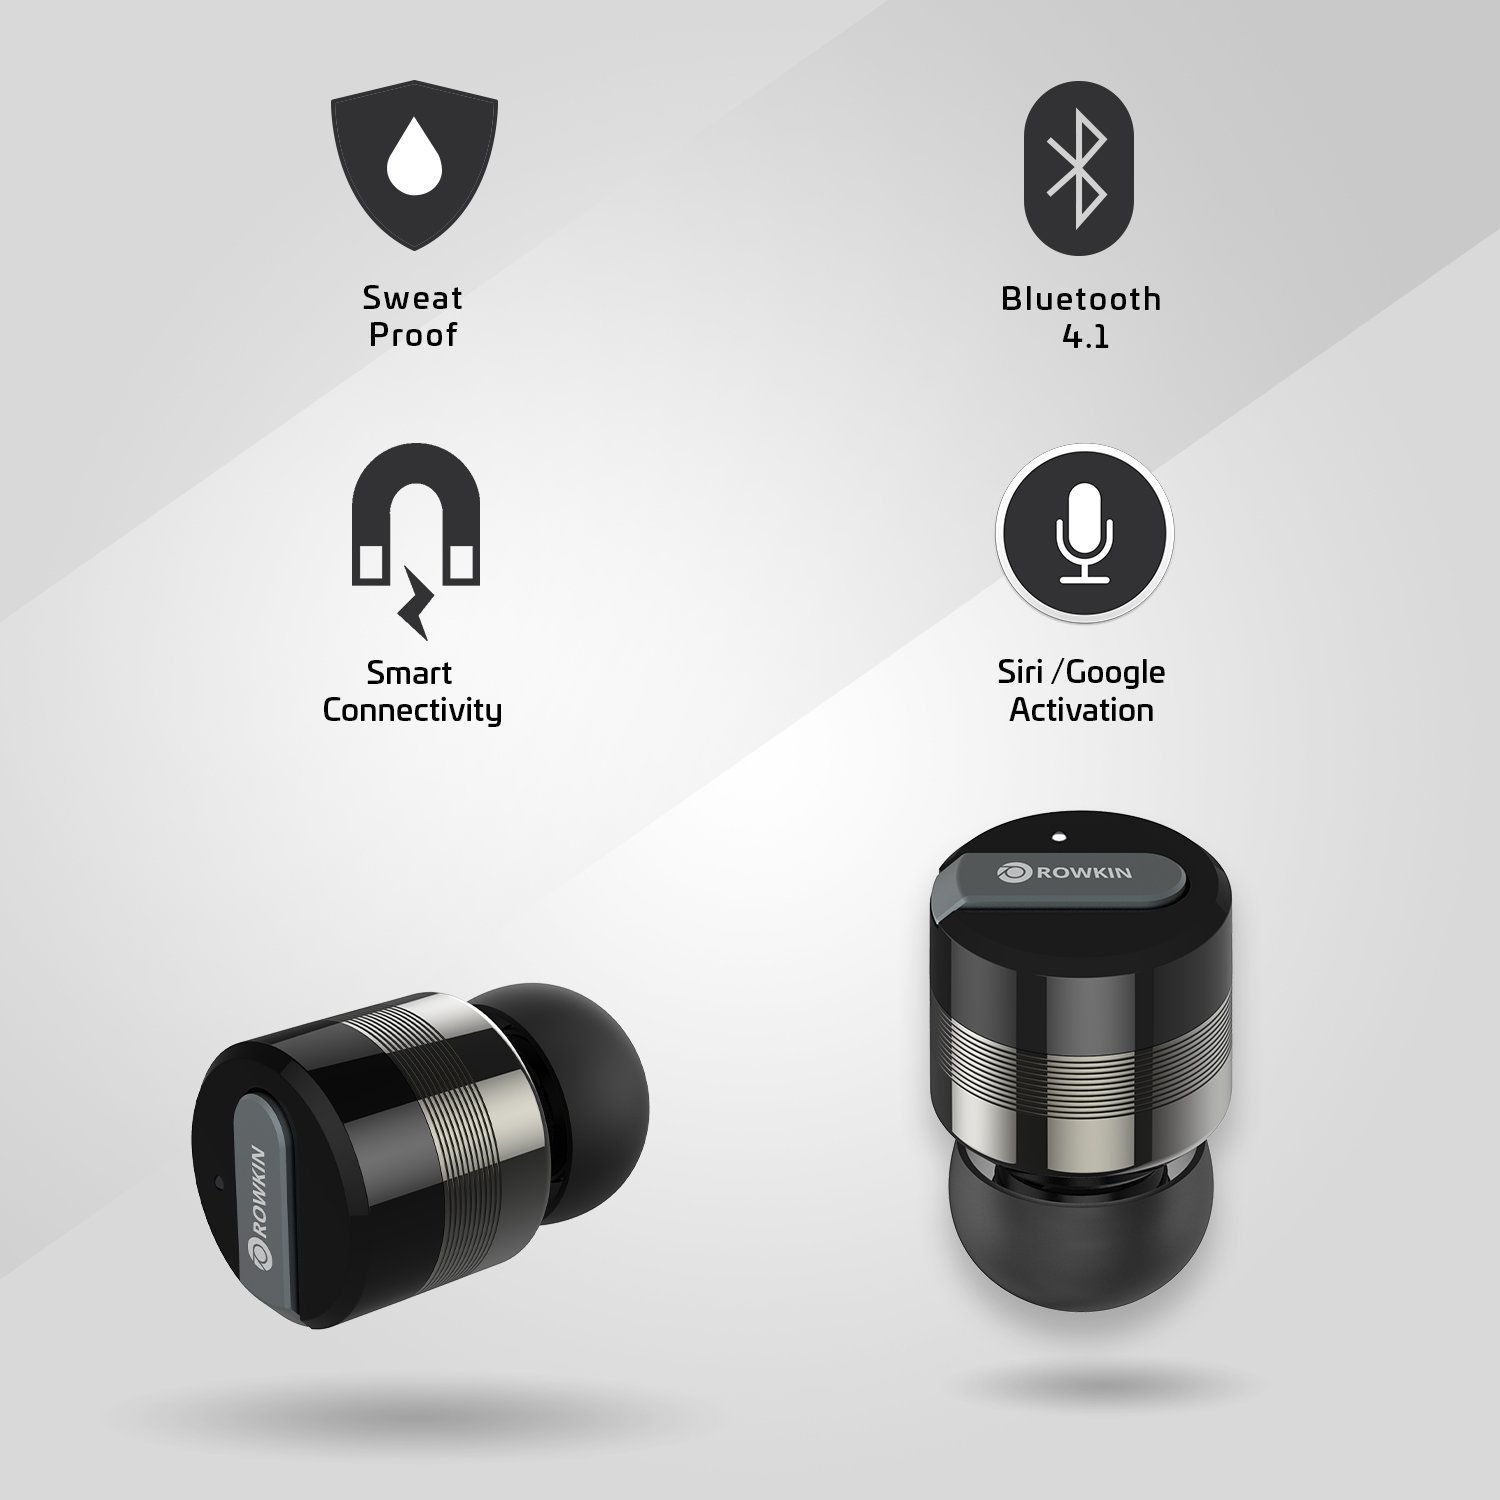 Rowkin Bit Charge Stereo: True Wireless Earbuds w/ Charging Case. Bluetooth Headphones Smallest Cordless Hands-free Mini Earphones Headset w/ Mic & Noise Reduction for Android & iPhone (Space Gray) by Rowkin (Image #3)